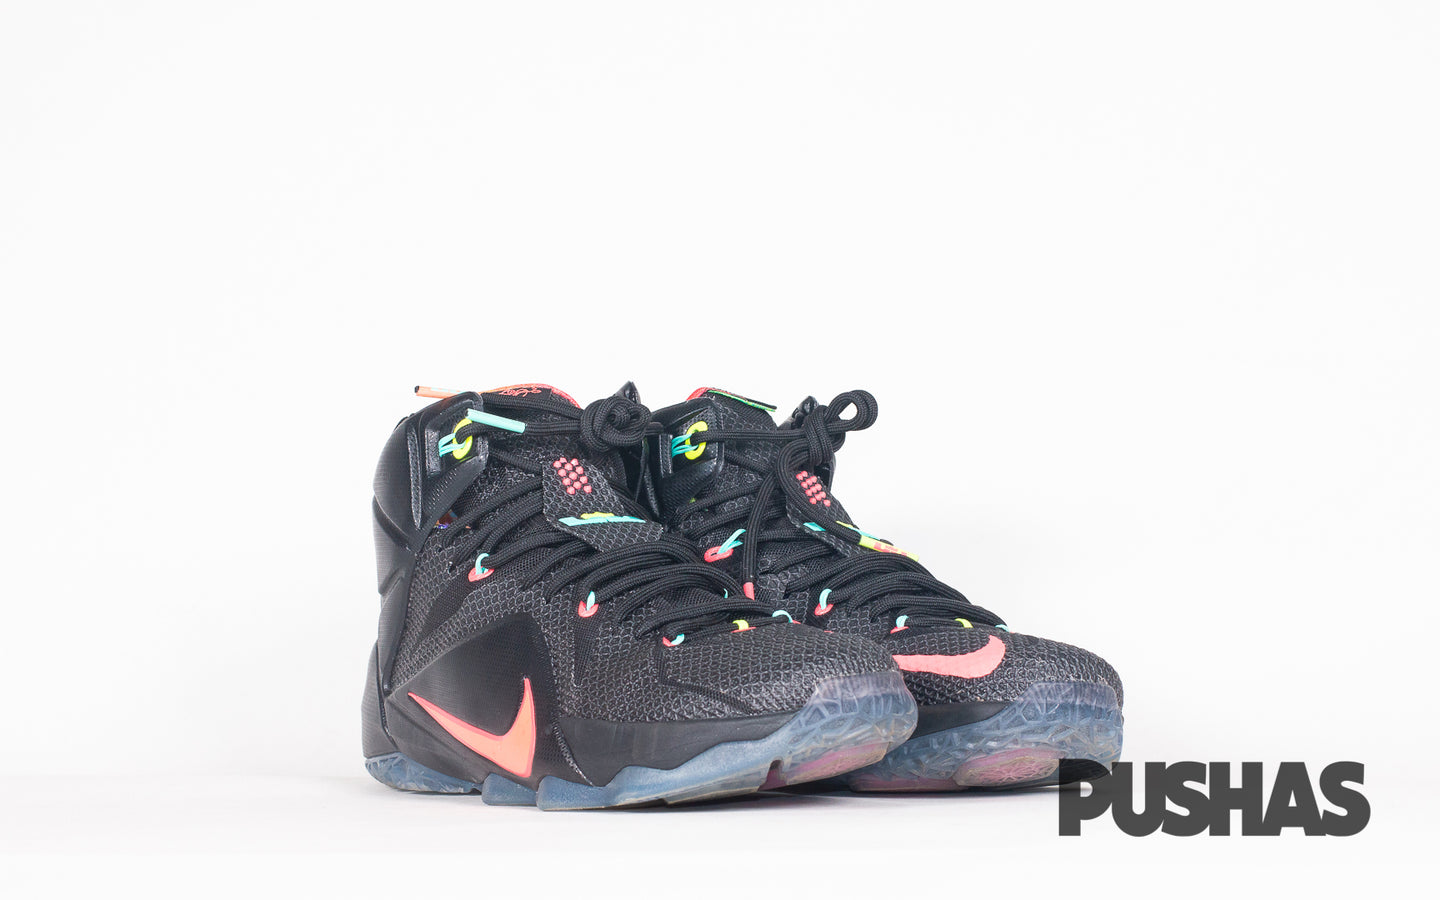 pushas-Nike-Lebron-12-Data